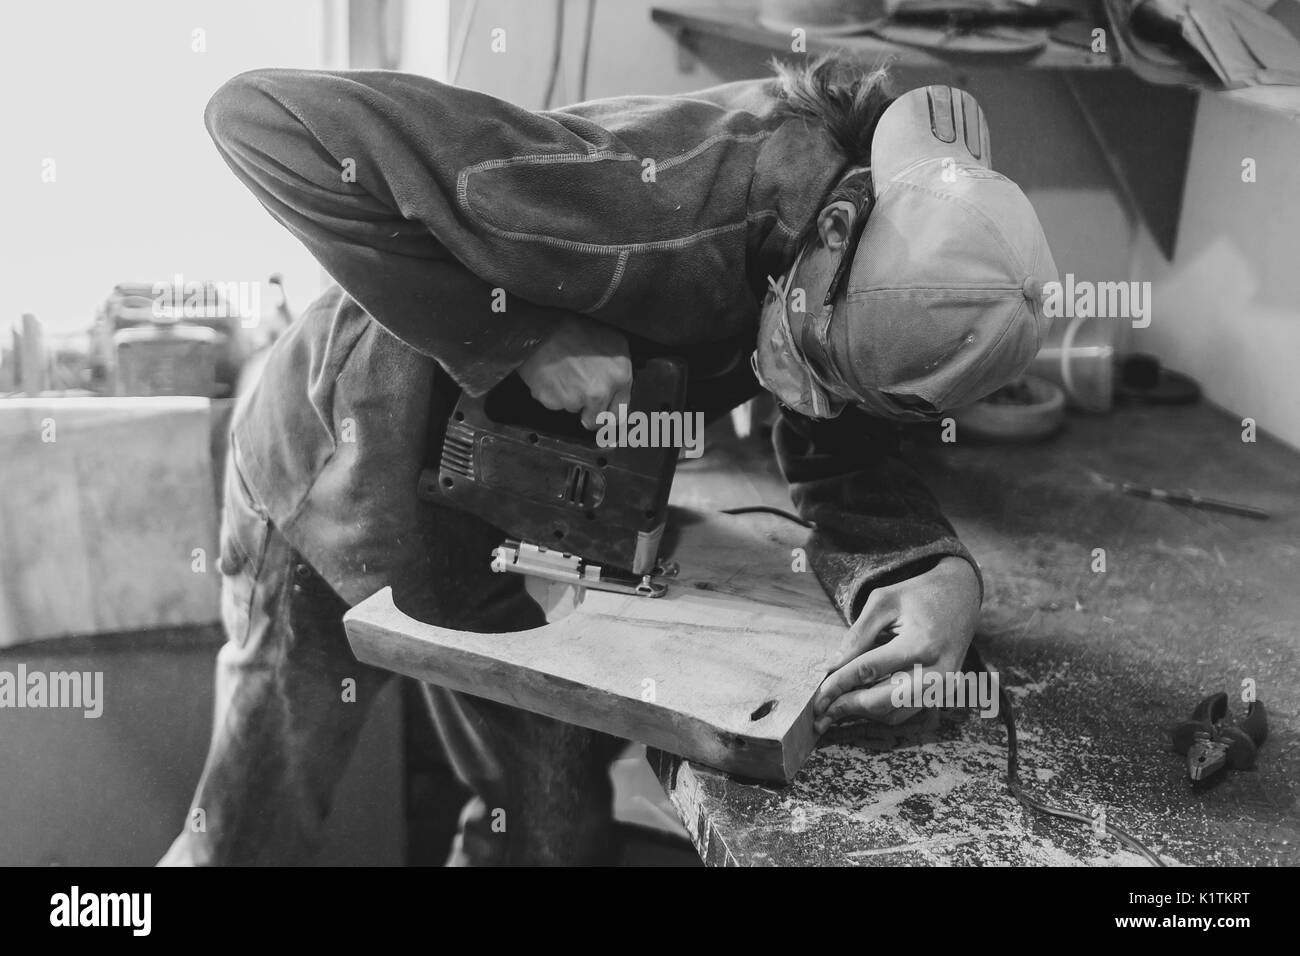 master saws a piece of wood in the workshop - Stock Image